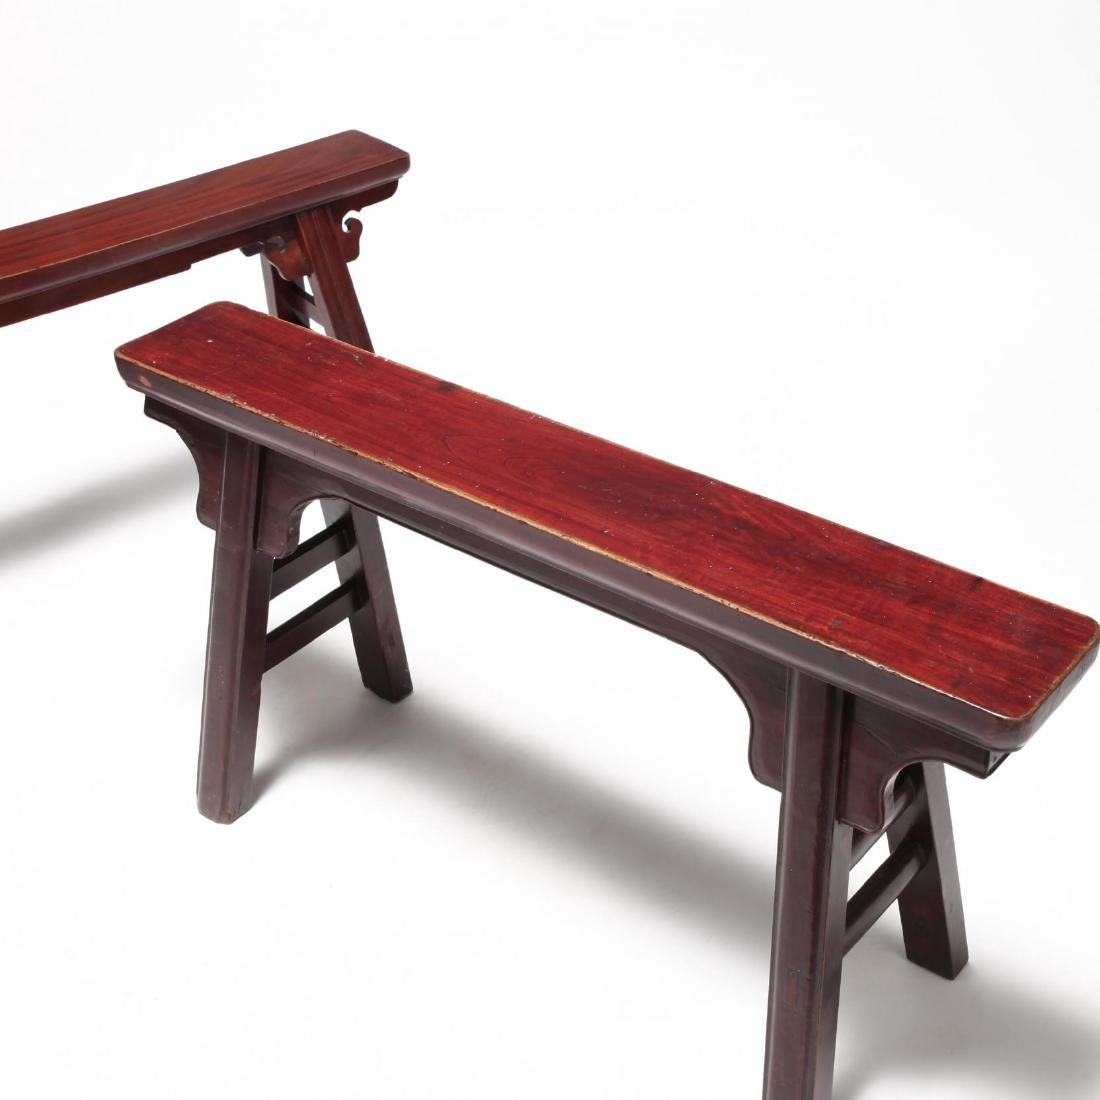 Two Chinese Wooden Benches - 3